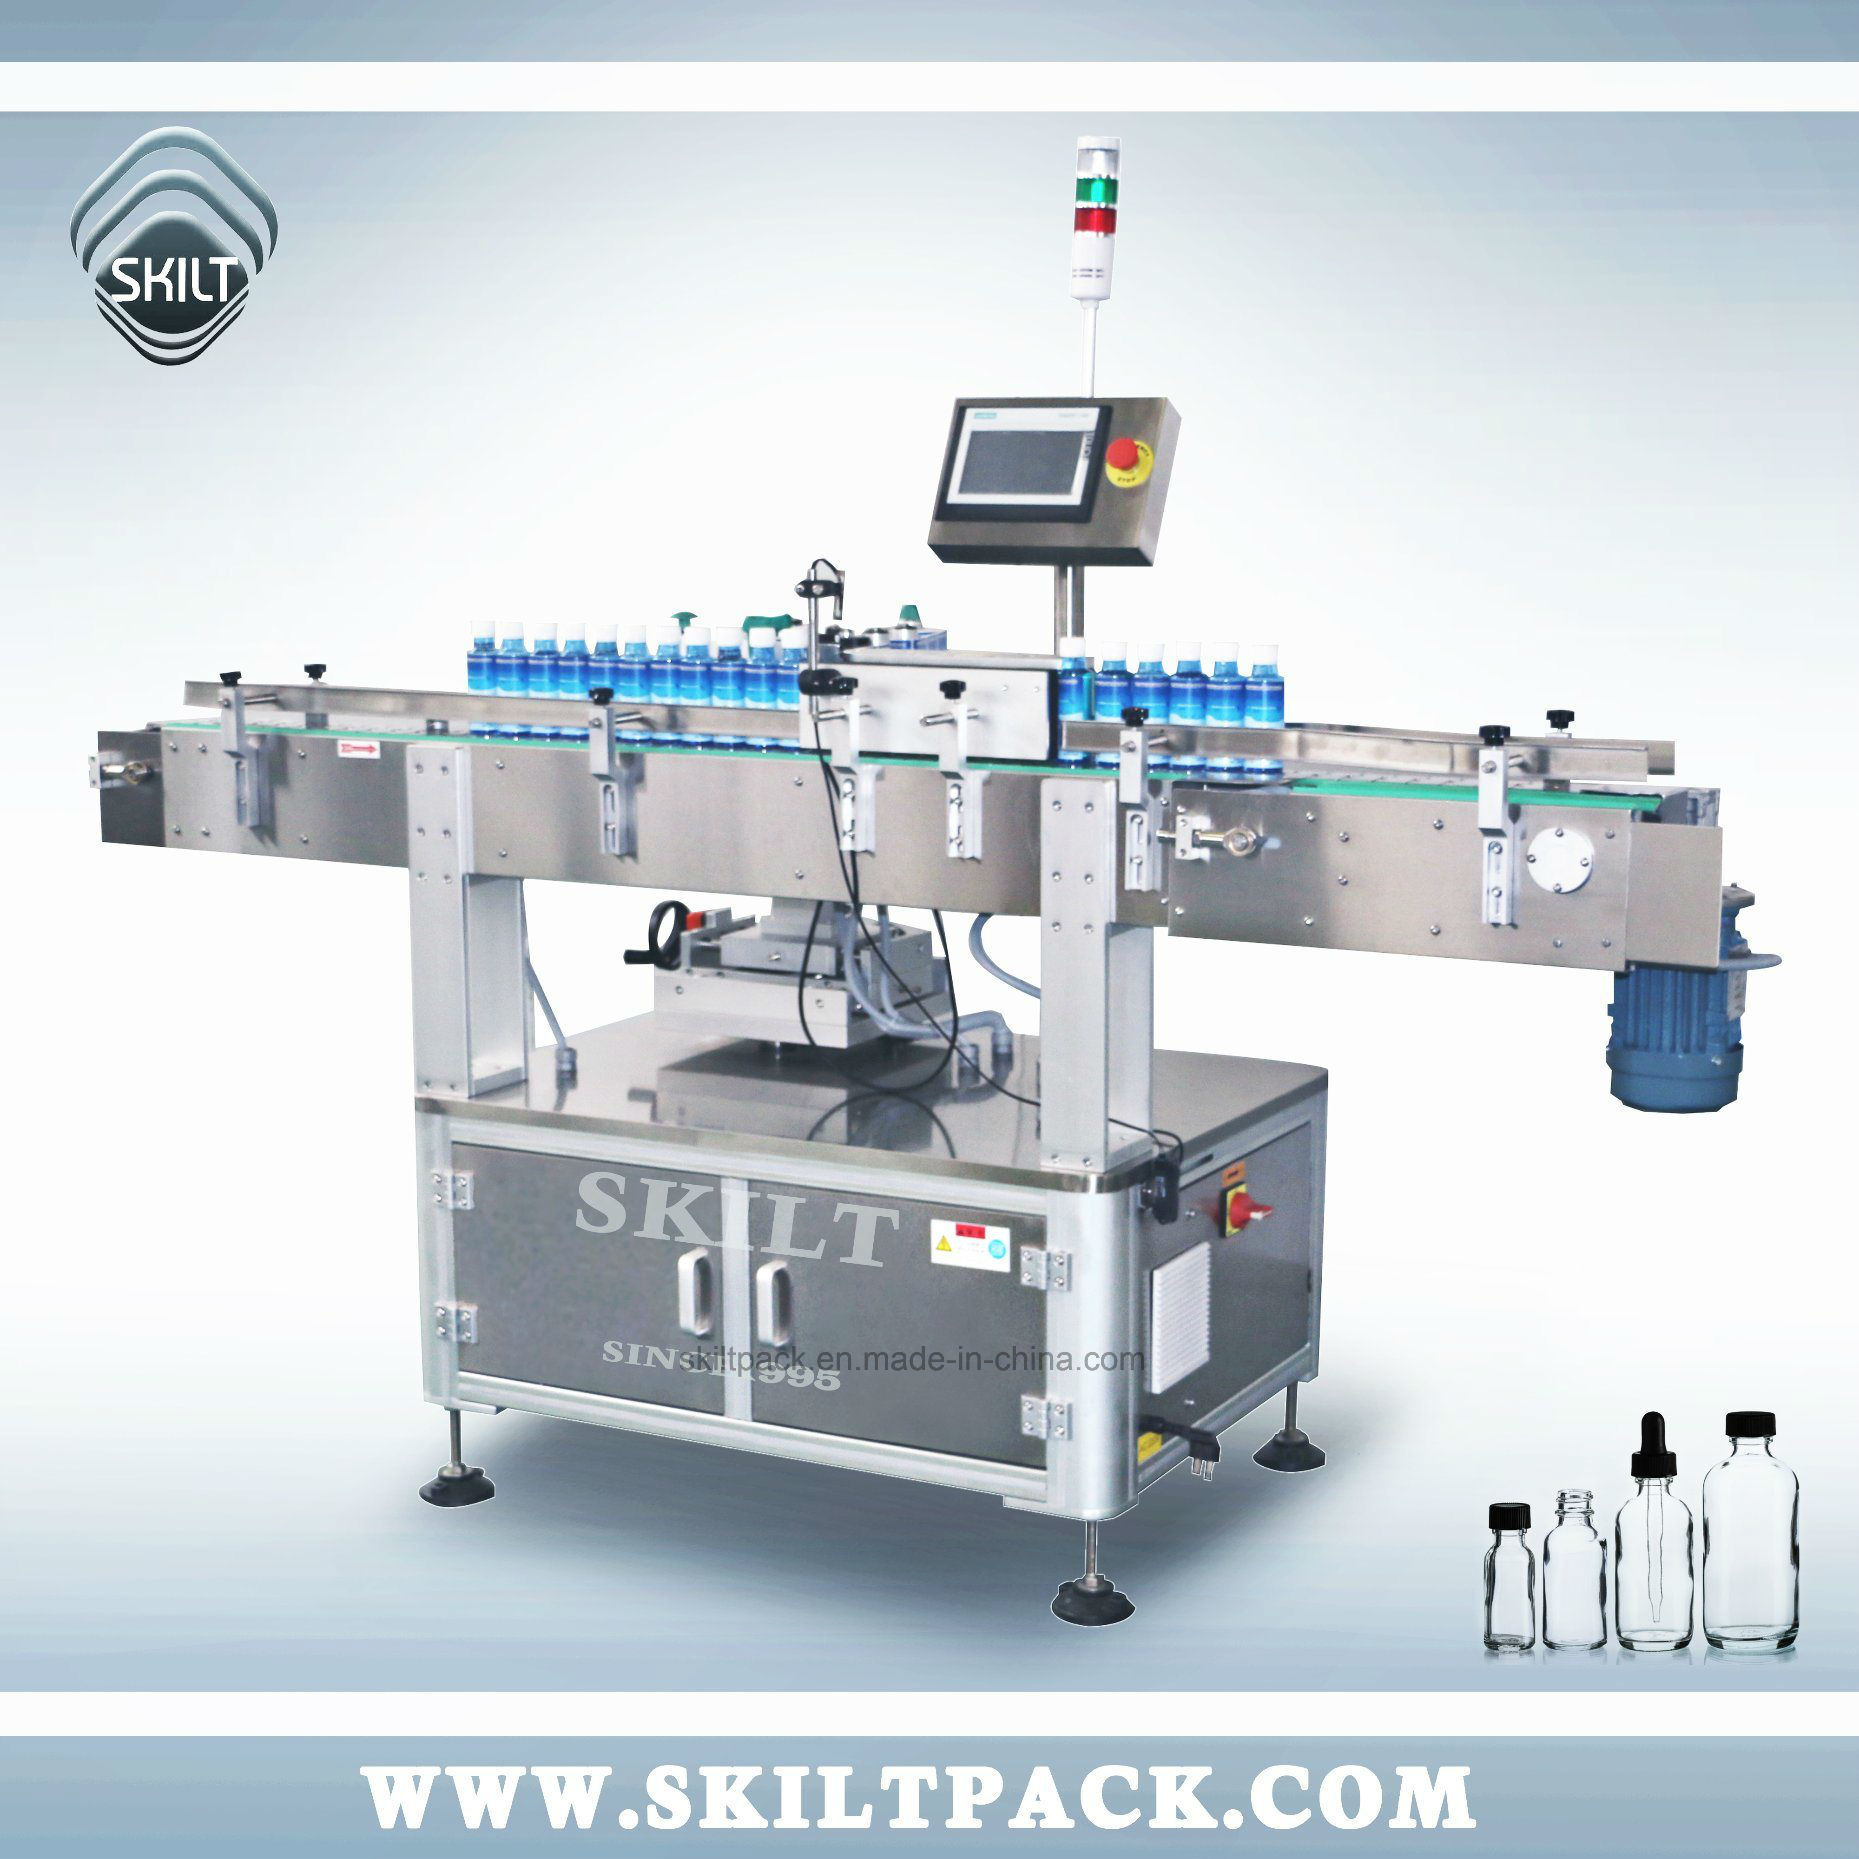 China Automatic Plastic Gl Bottle Jars Cans Self Adhesive Label Licator Labeling Machine